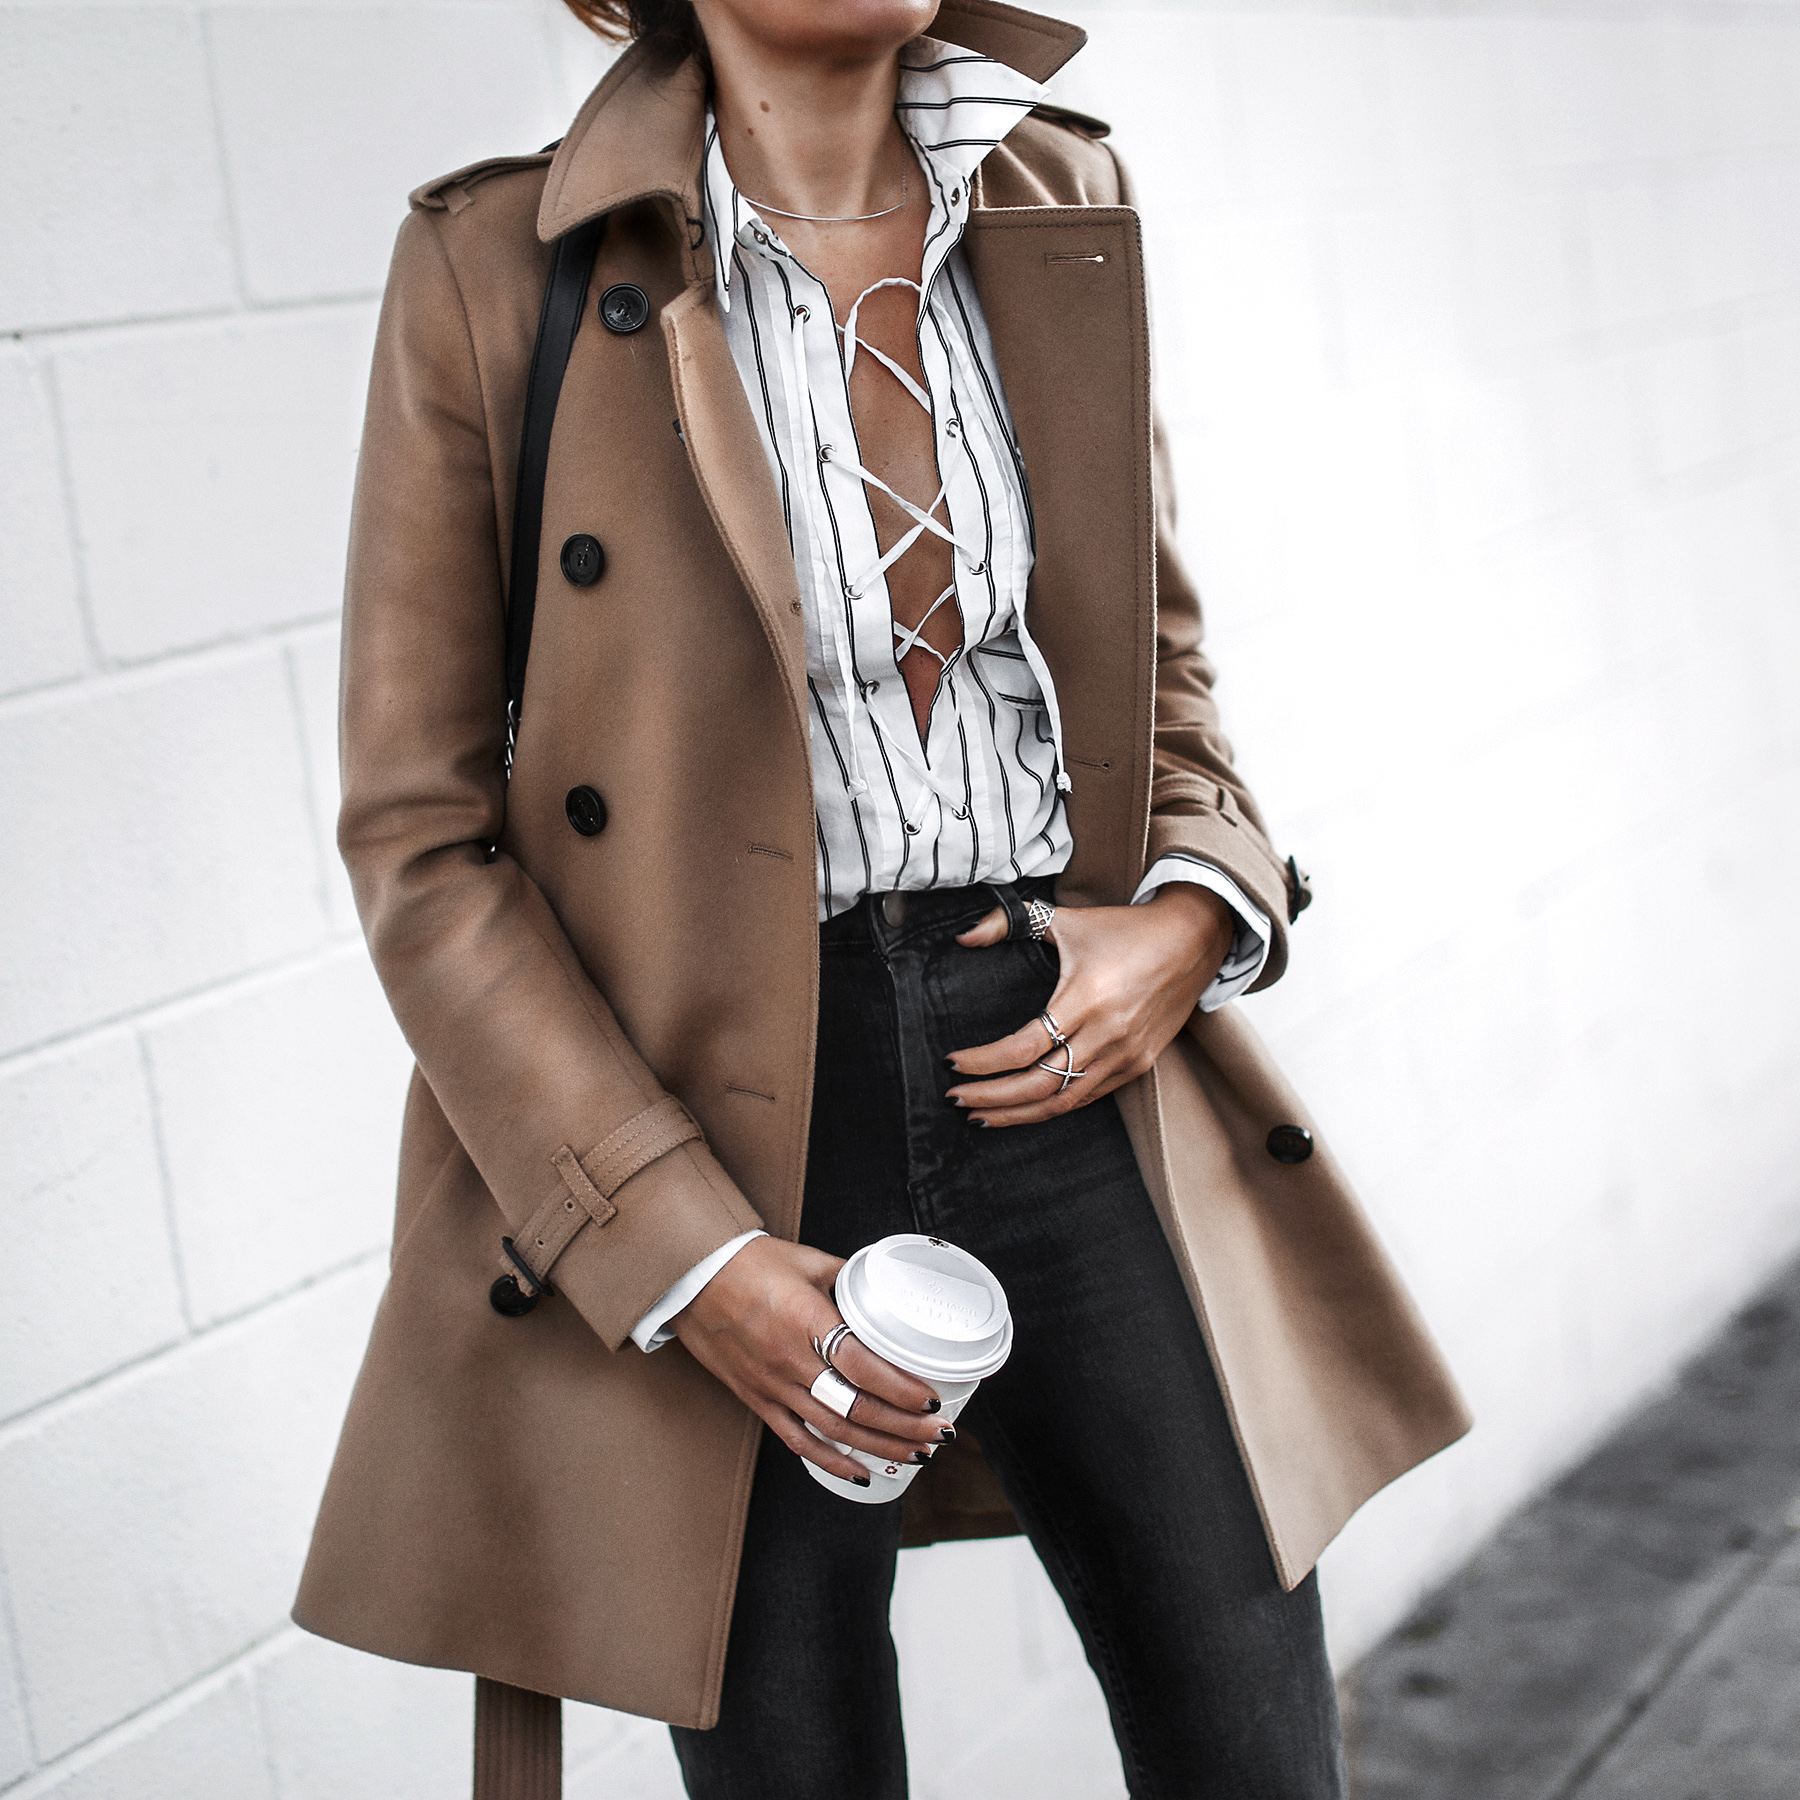 burberry coat, lace-up blouse, high waisted jeans